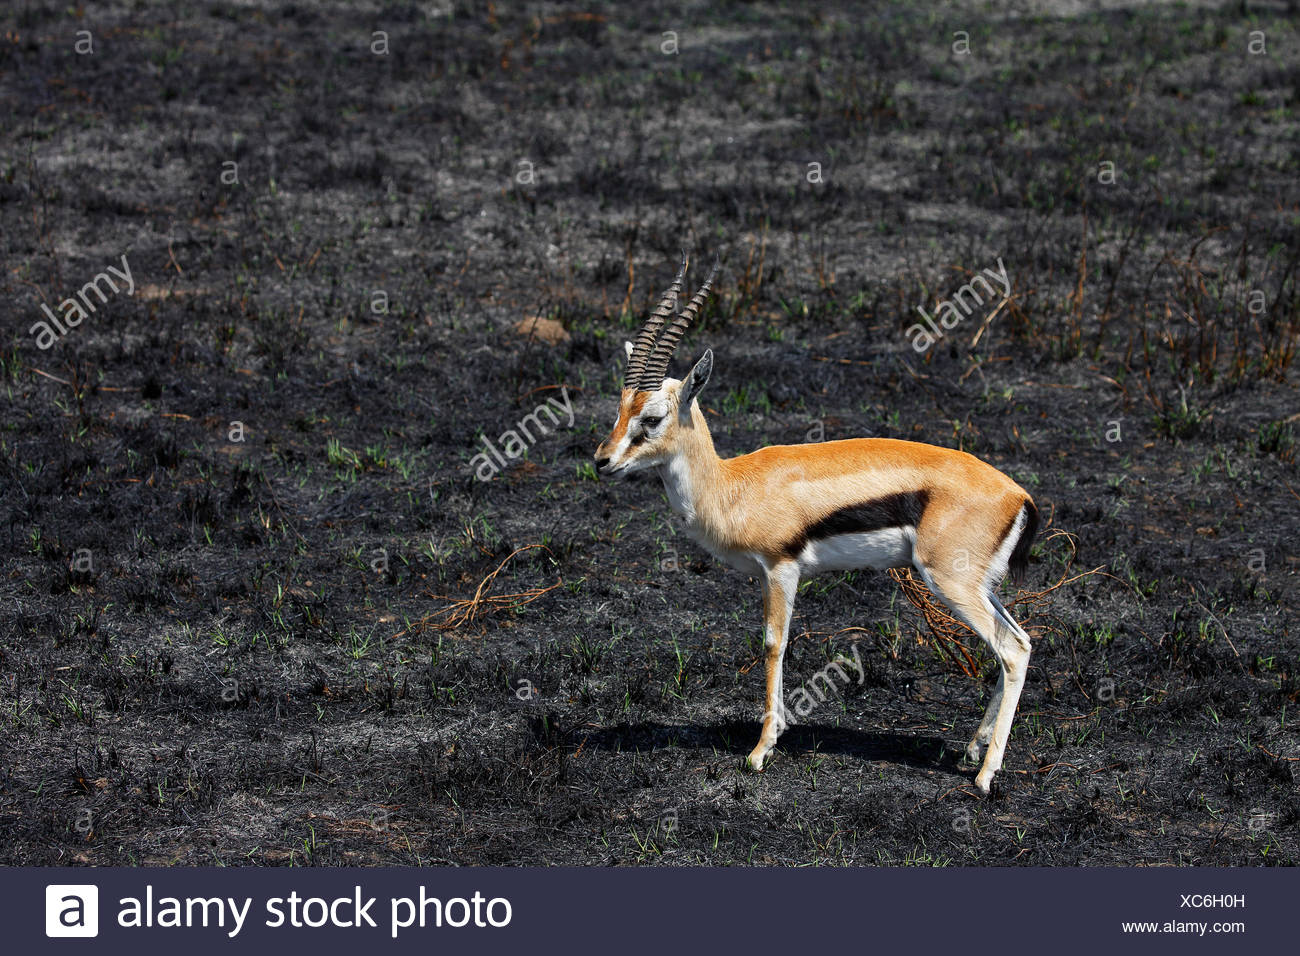 Gazelle - the animal of the steppes and deserts 47